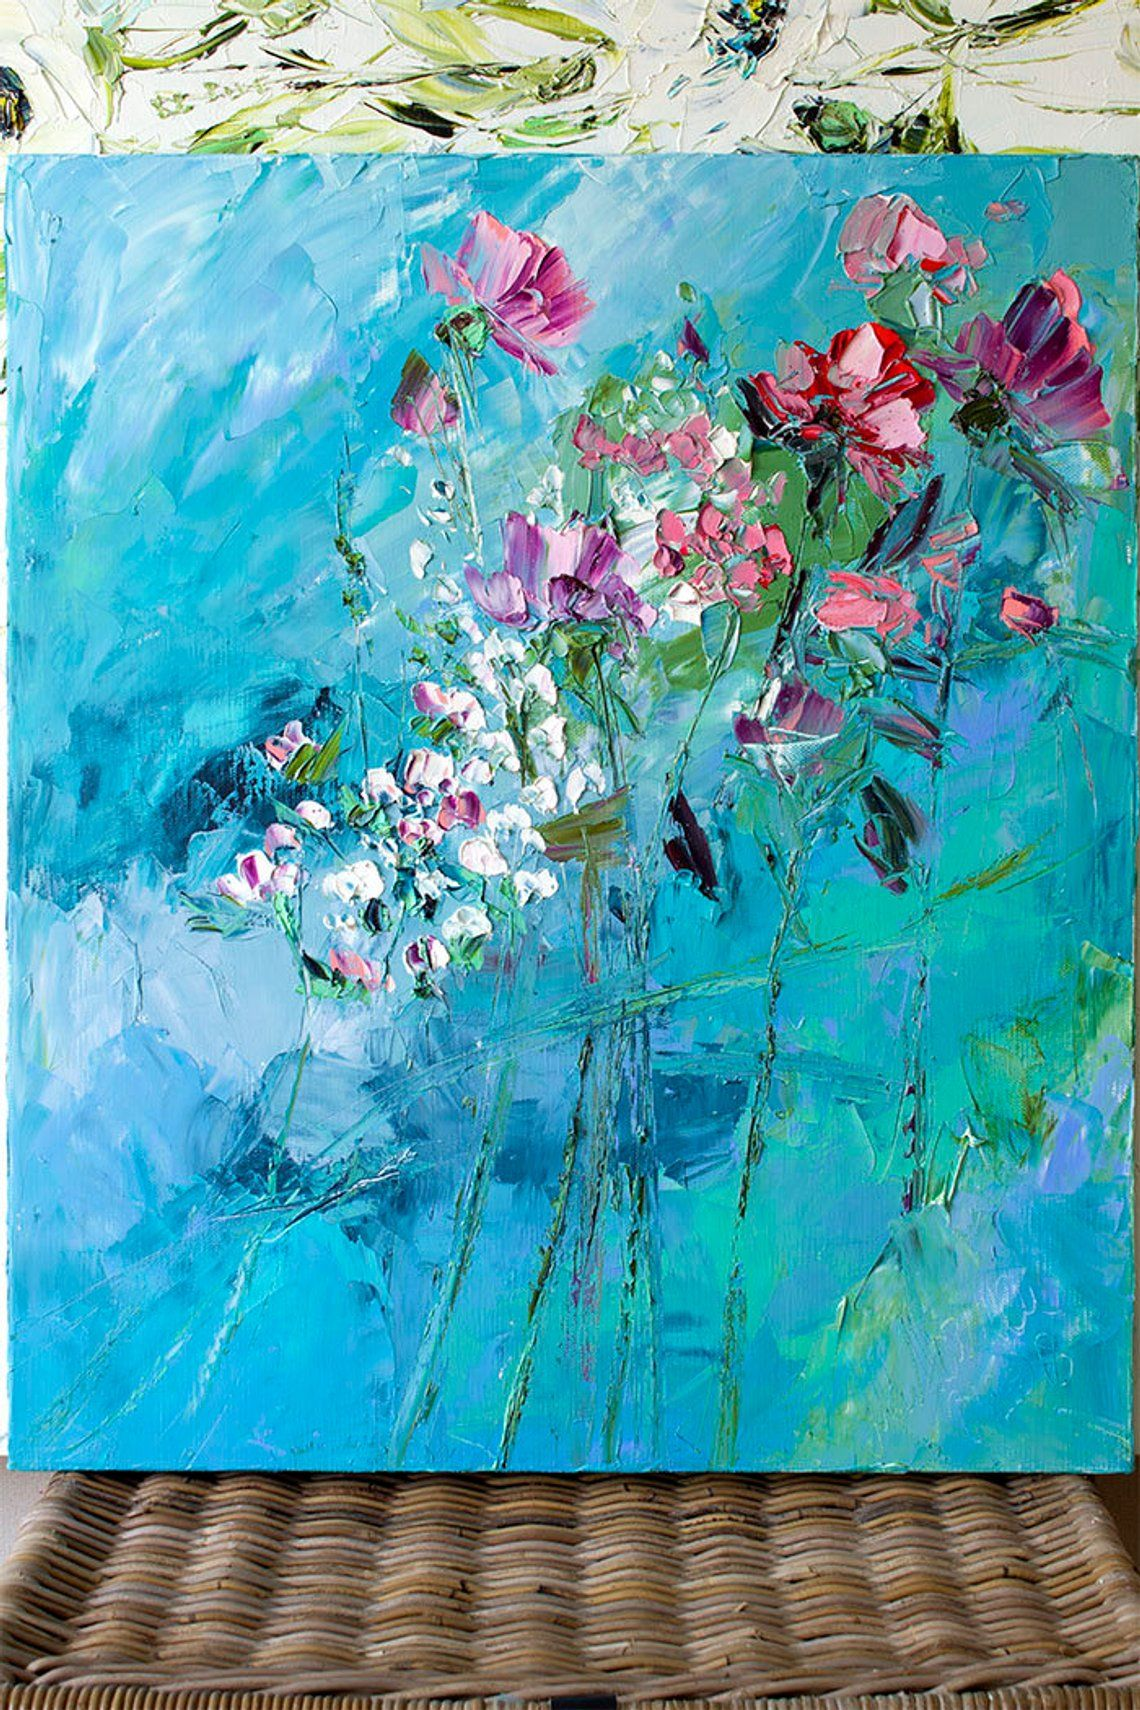 Emerald painting boho flower art abstract flower turquoise